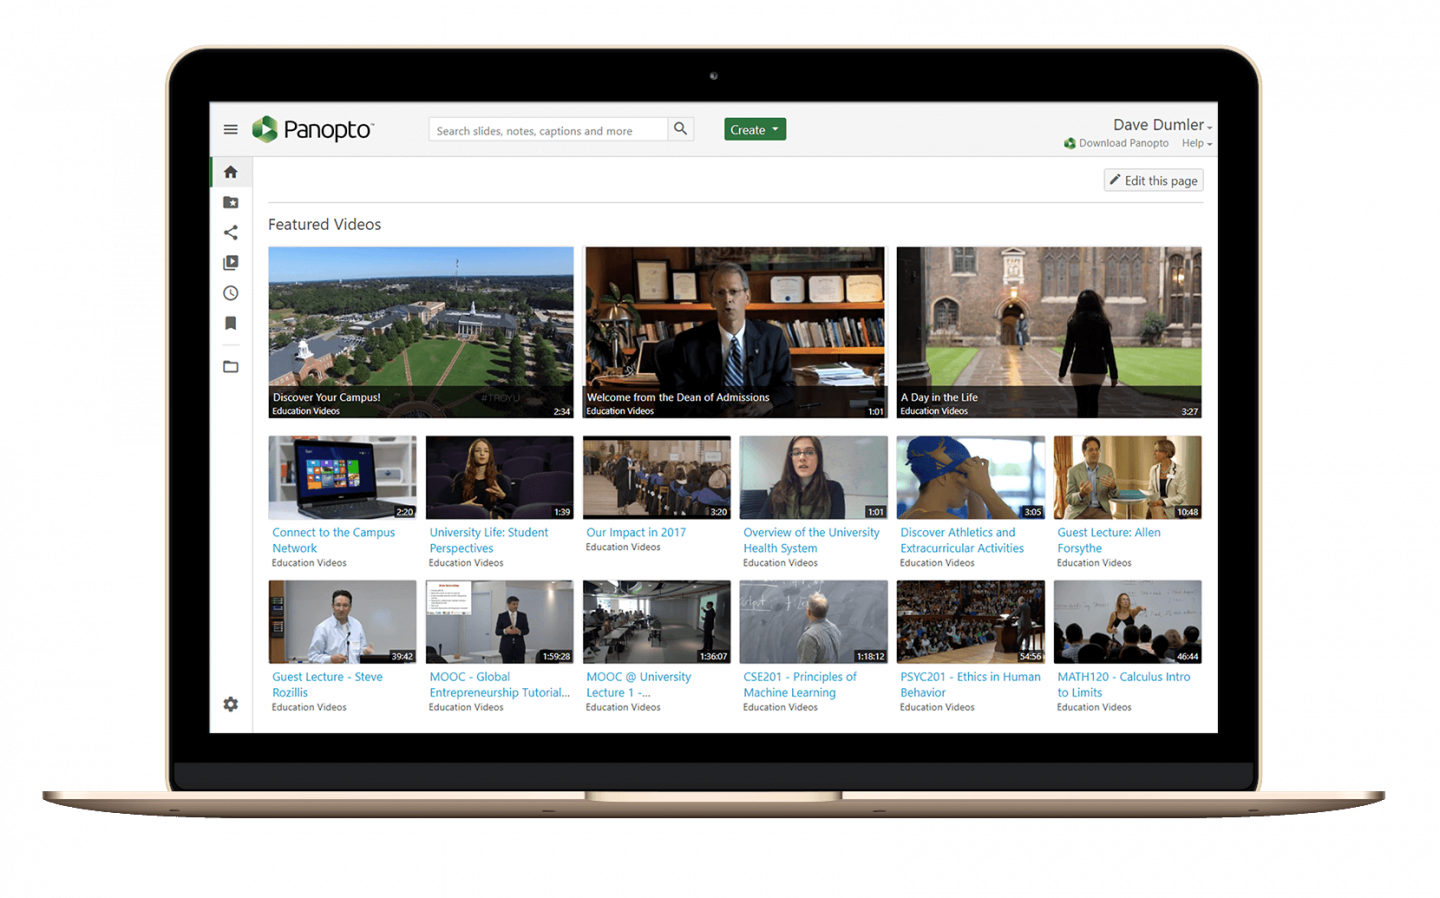 Video Content Management and Accessibility in Panopto